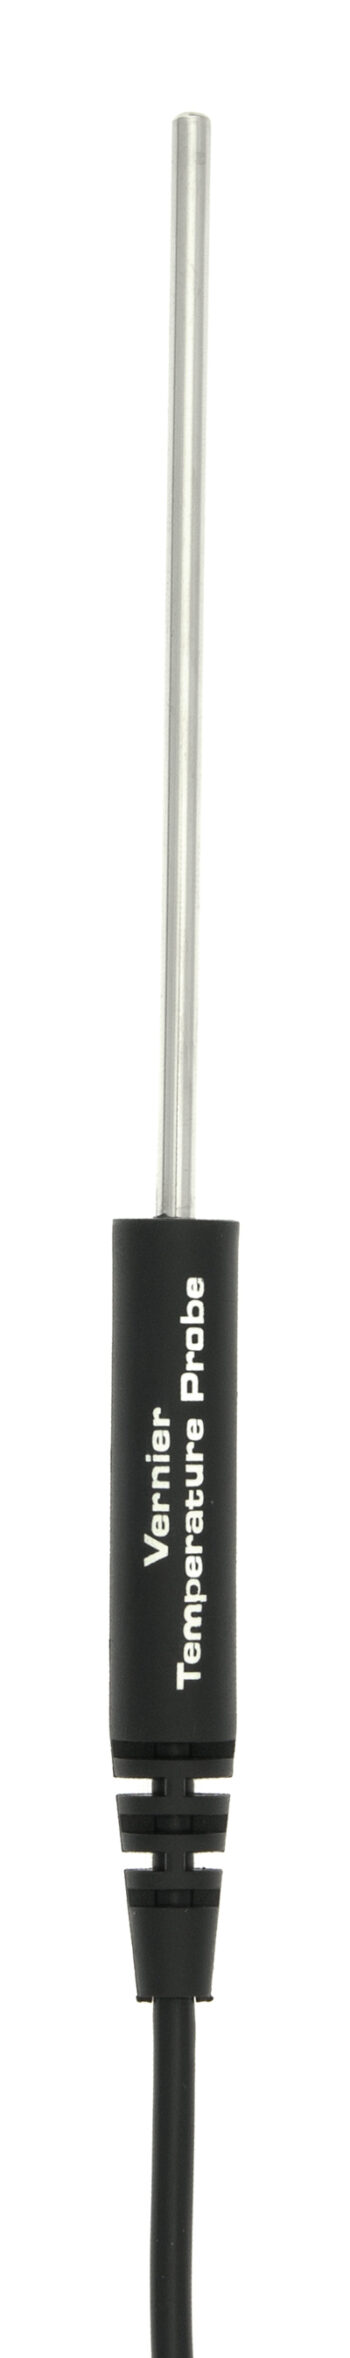 Image of Stainless Steel Temperature Probe